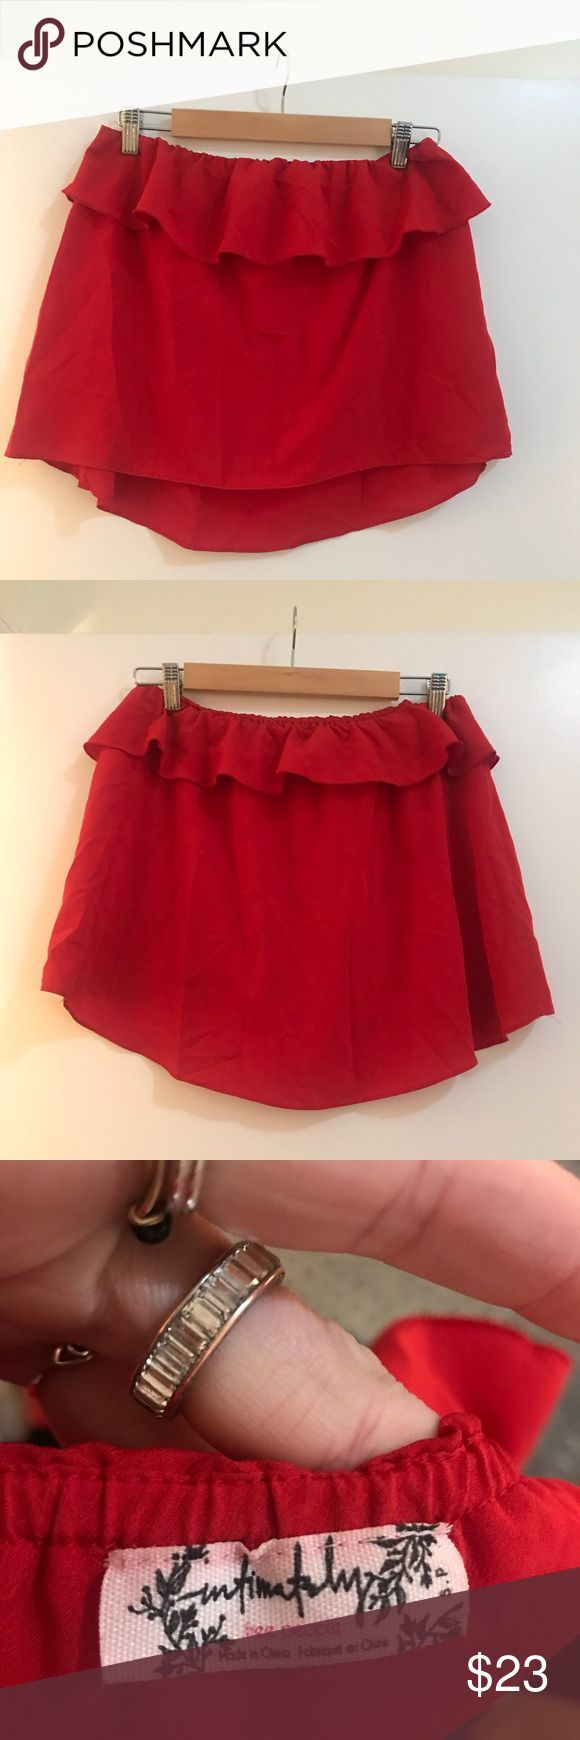 Free people red ruffle tube top size S Free people red ruffle tube top size Small  Preowned worn once Free People Tops Crop Tops